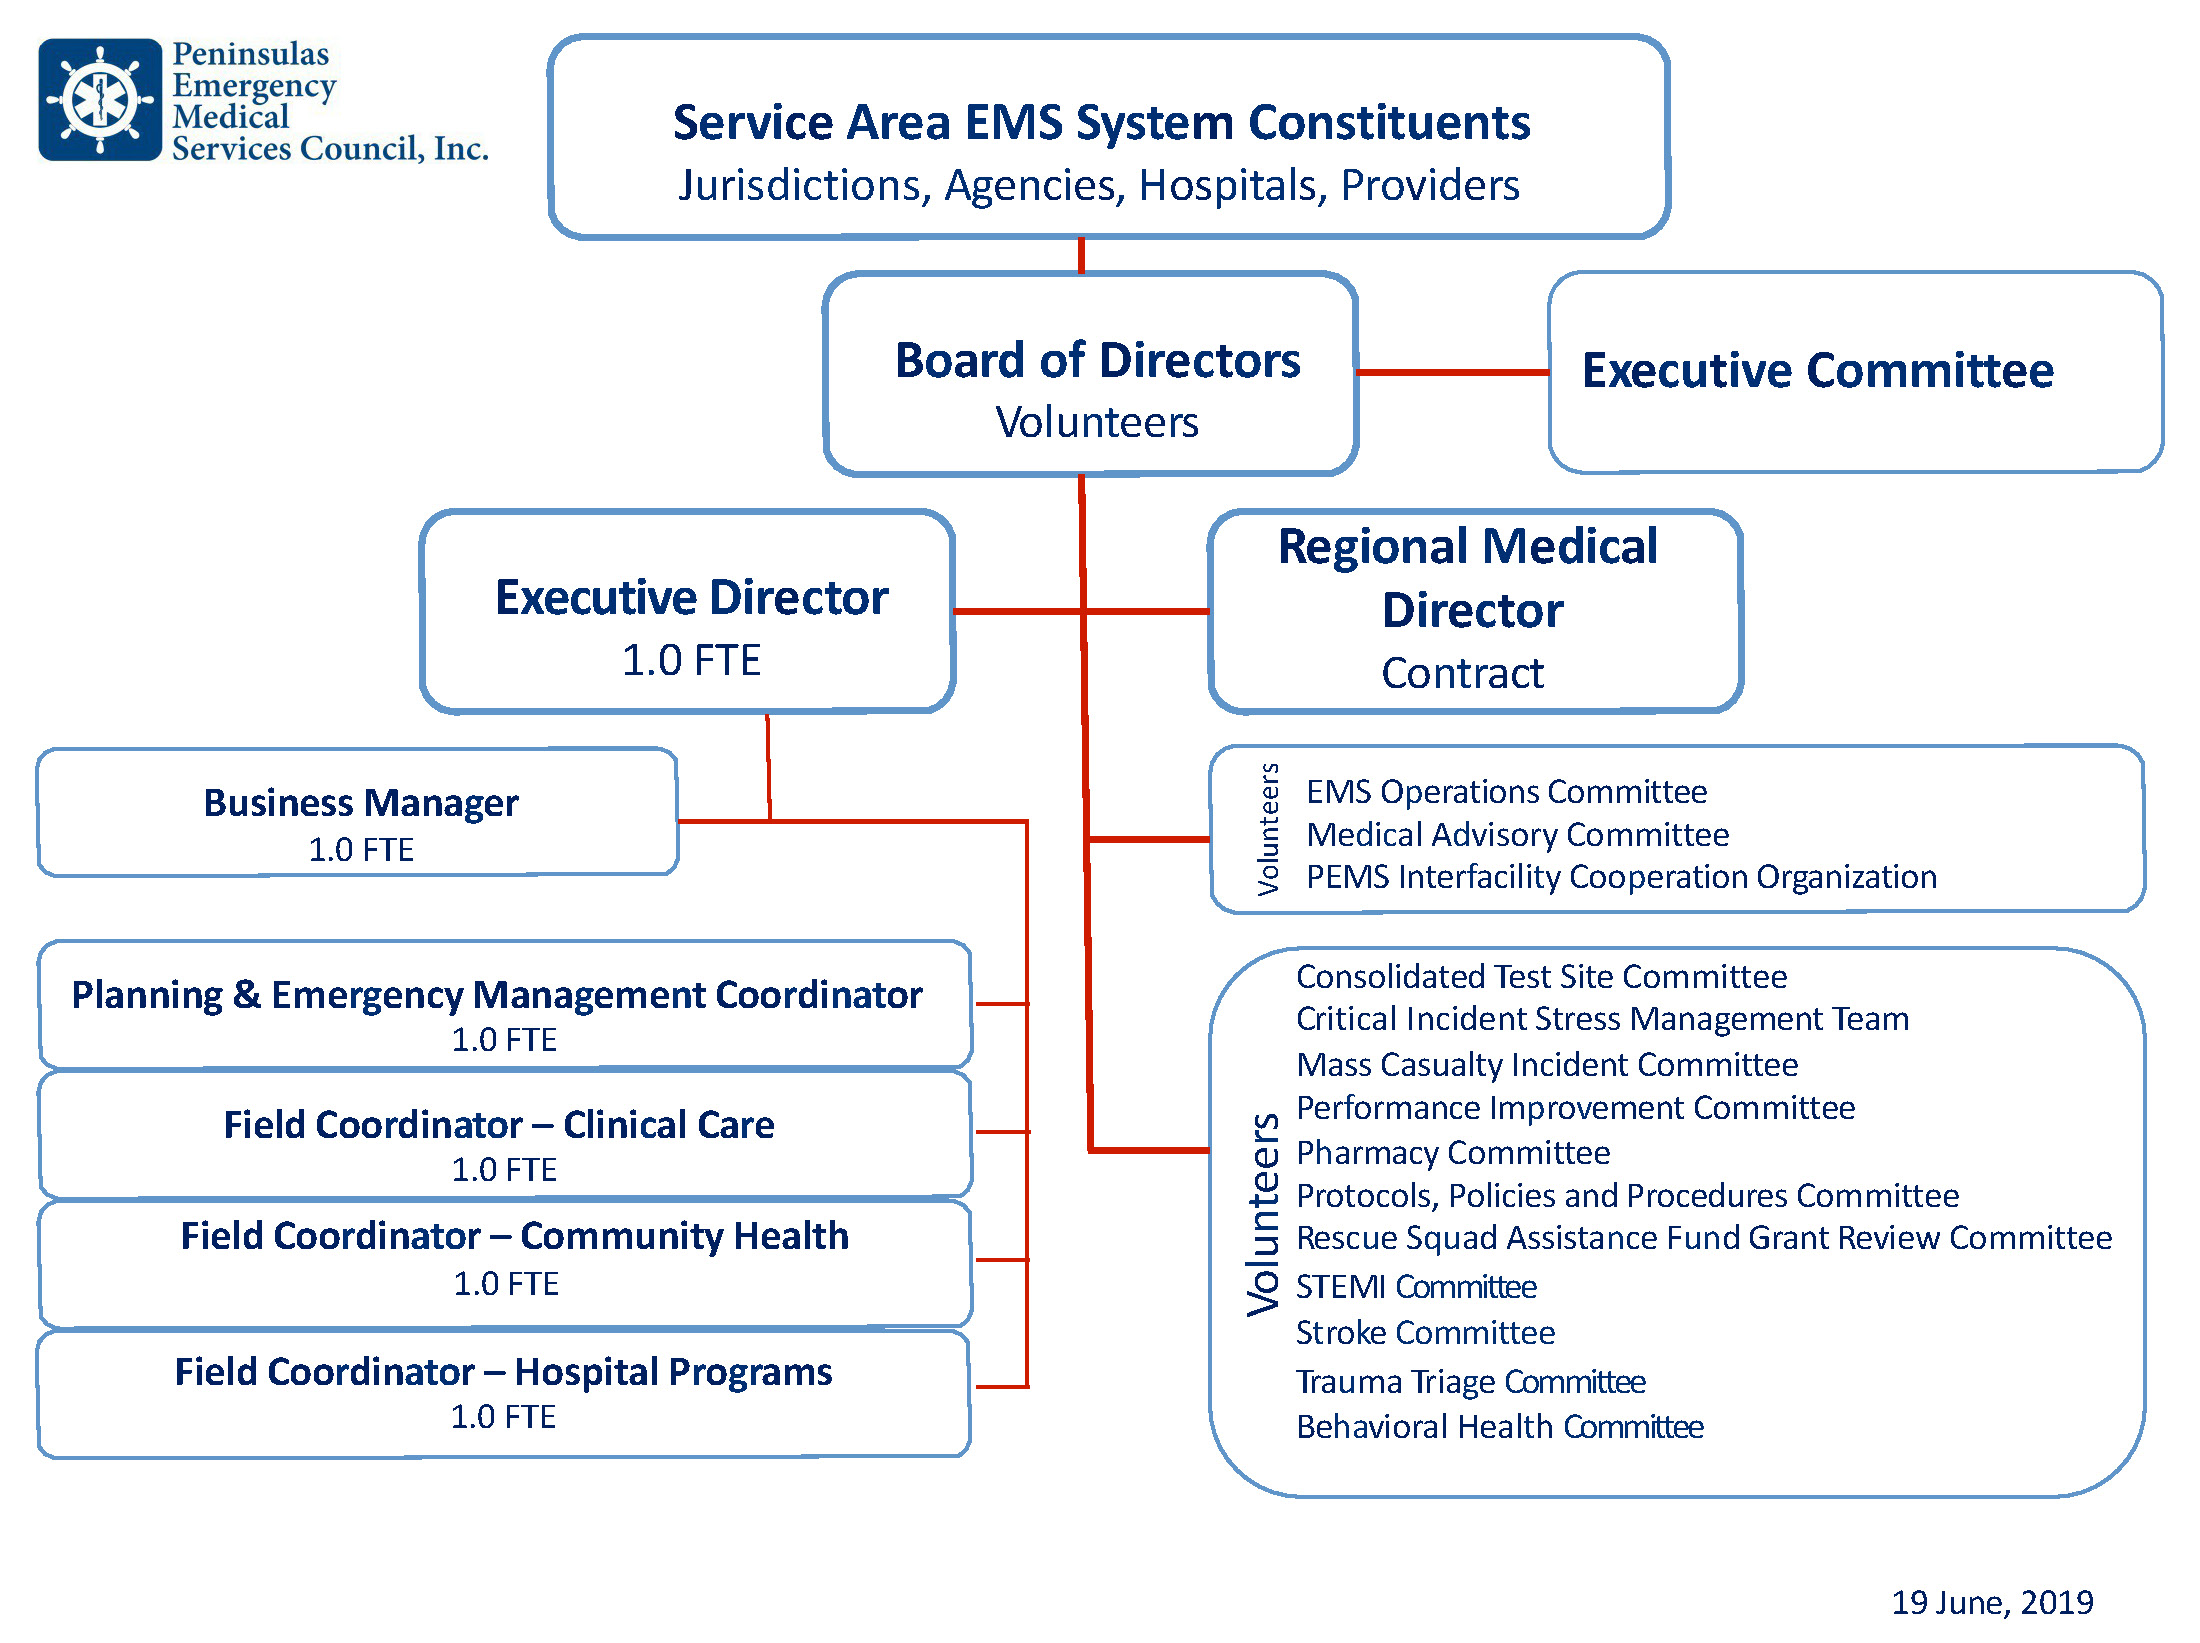 PEMS Organization Structure 06 19 19